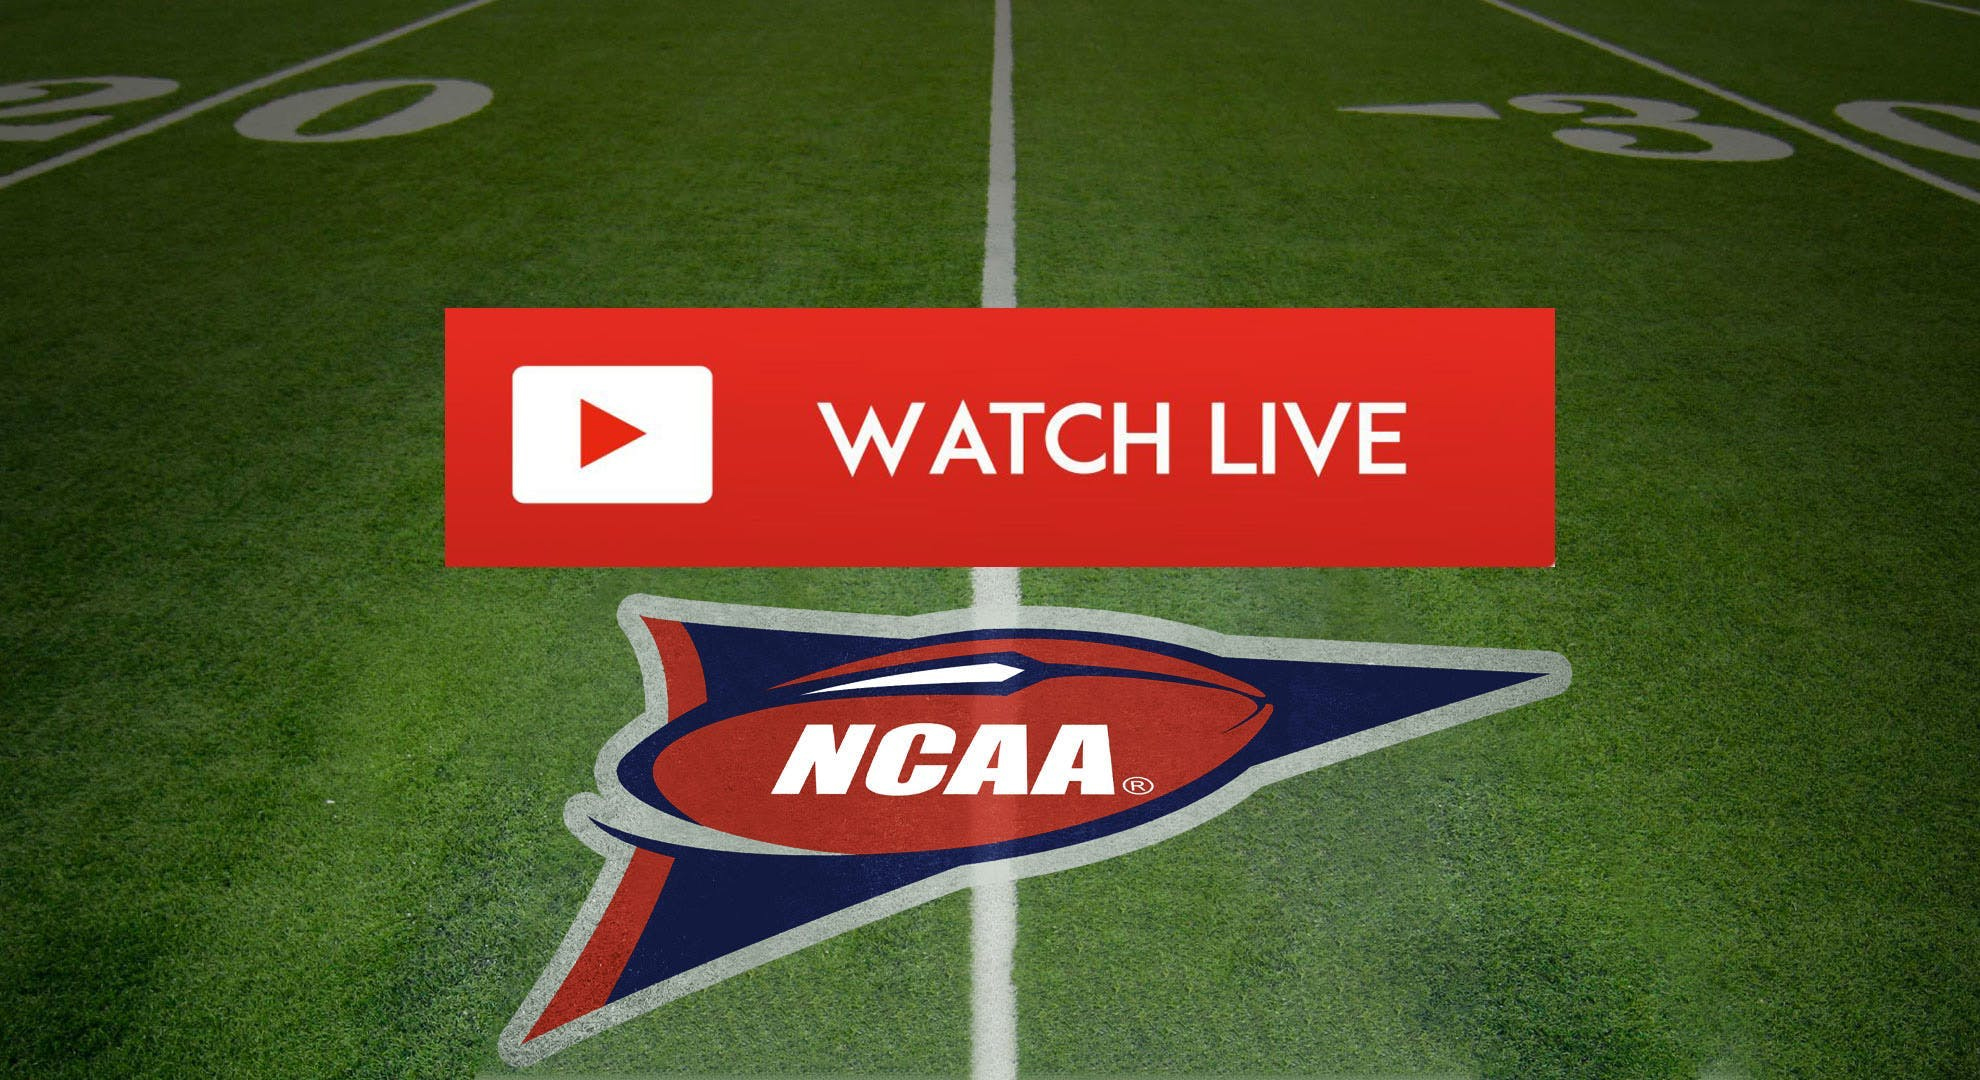 Western Kentucky vs Florida International Live Stream NCAA College Football Game 2021 Online TV at World Team USA in San Francisco - October 23, 2021 | SF Station